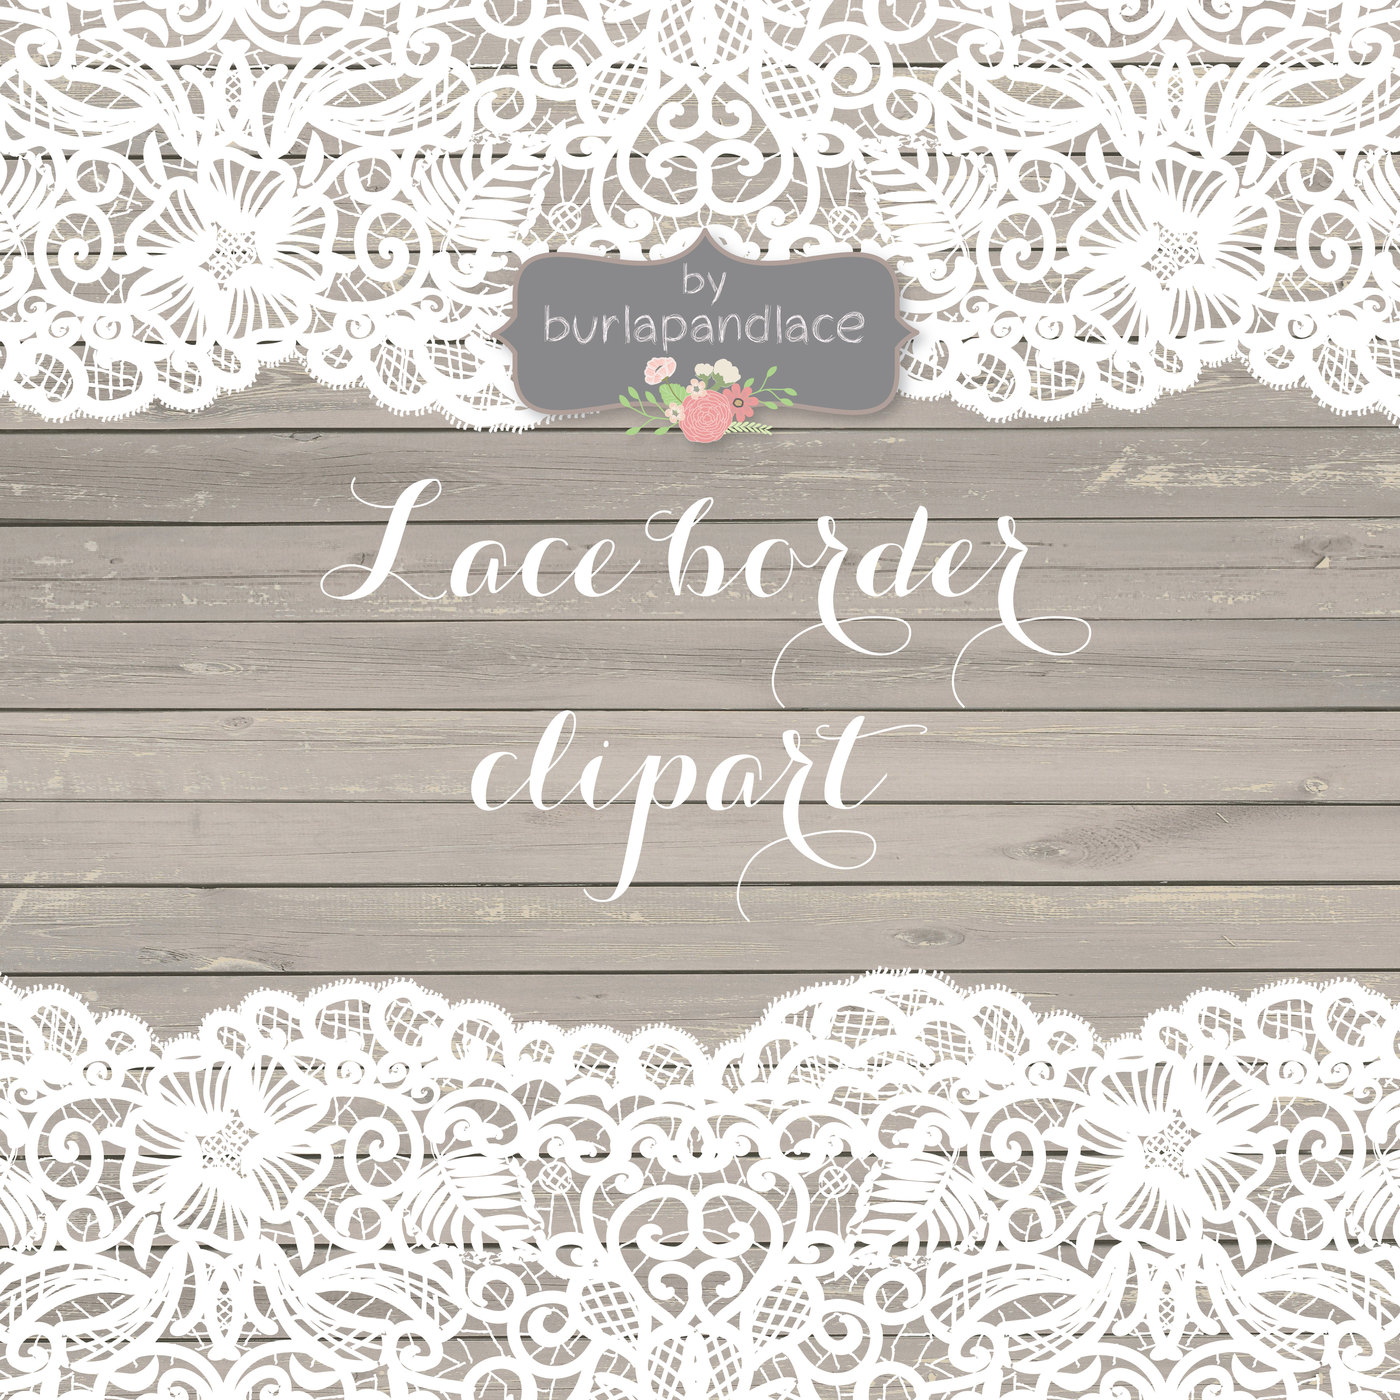 White lace border clipart 7 » Clipart Station.